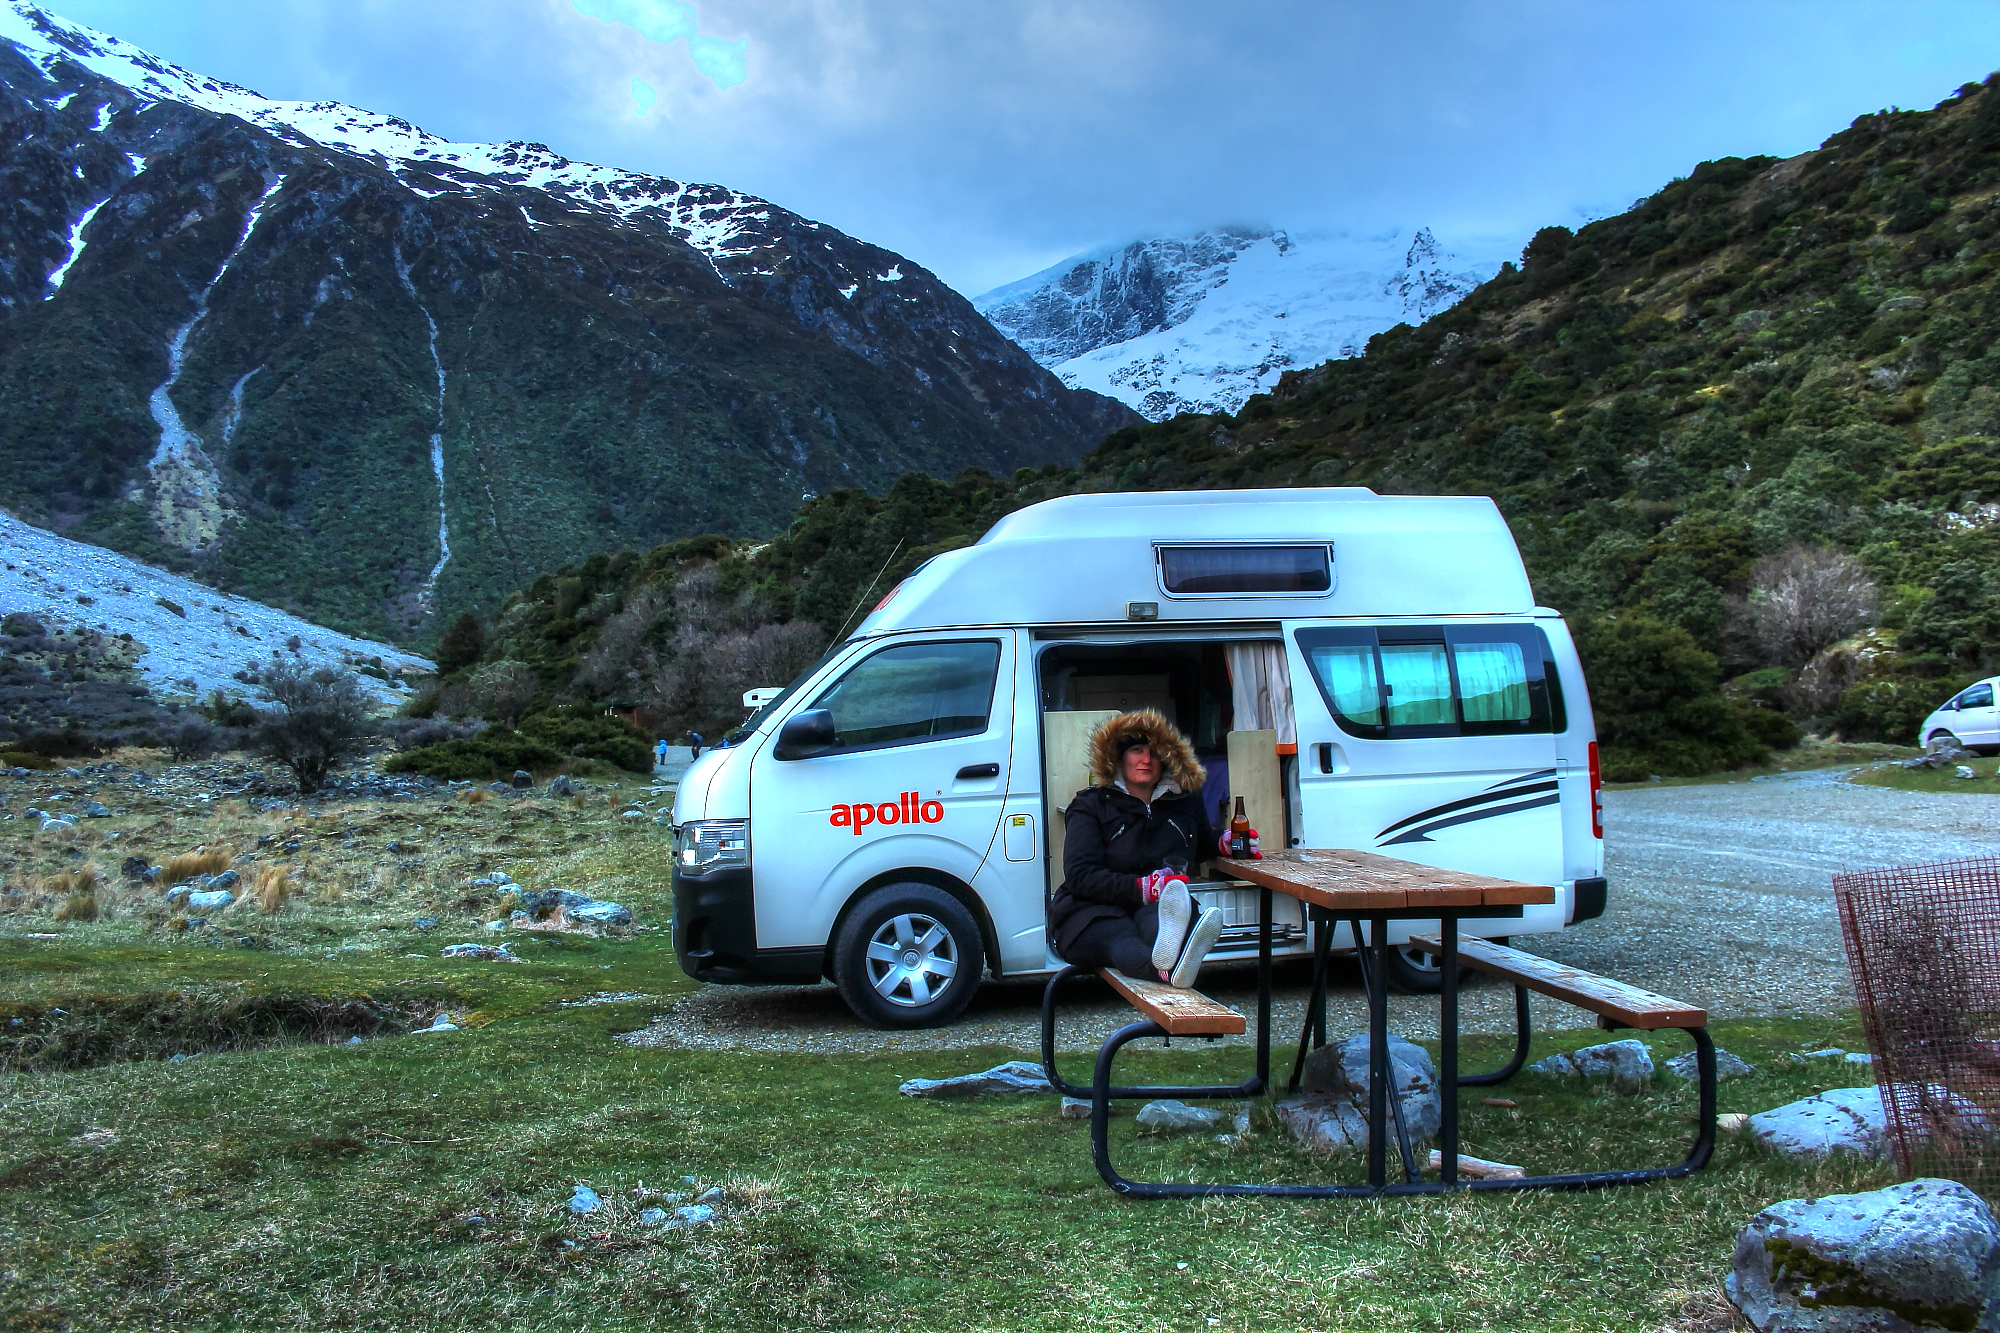 Camping at White Horse Campground in Mount Cook. New Zealand